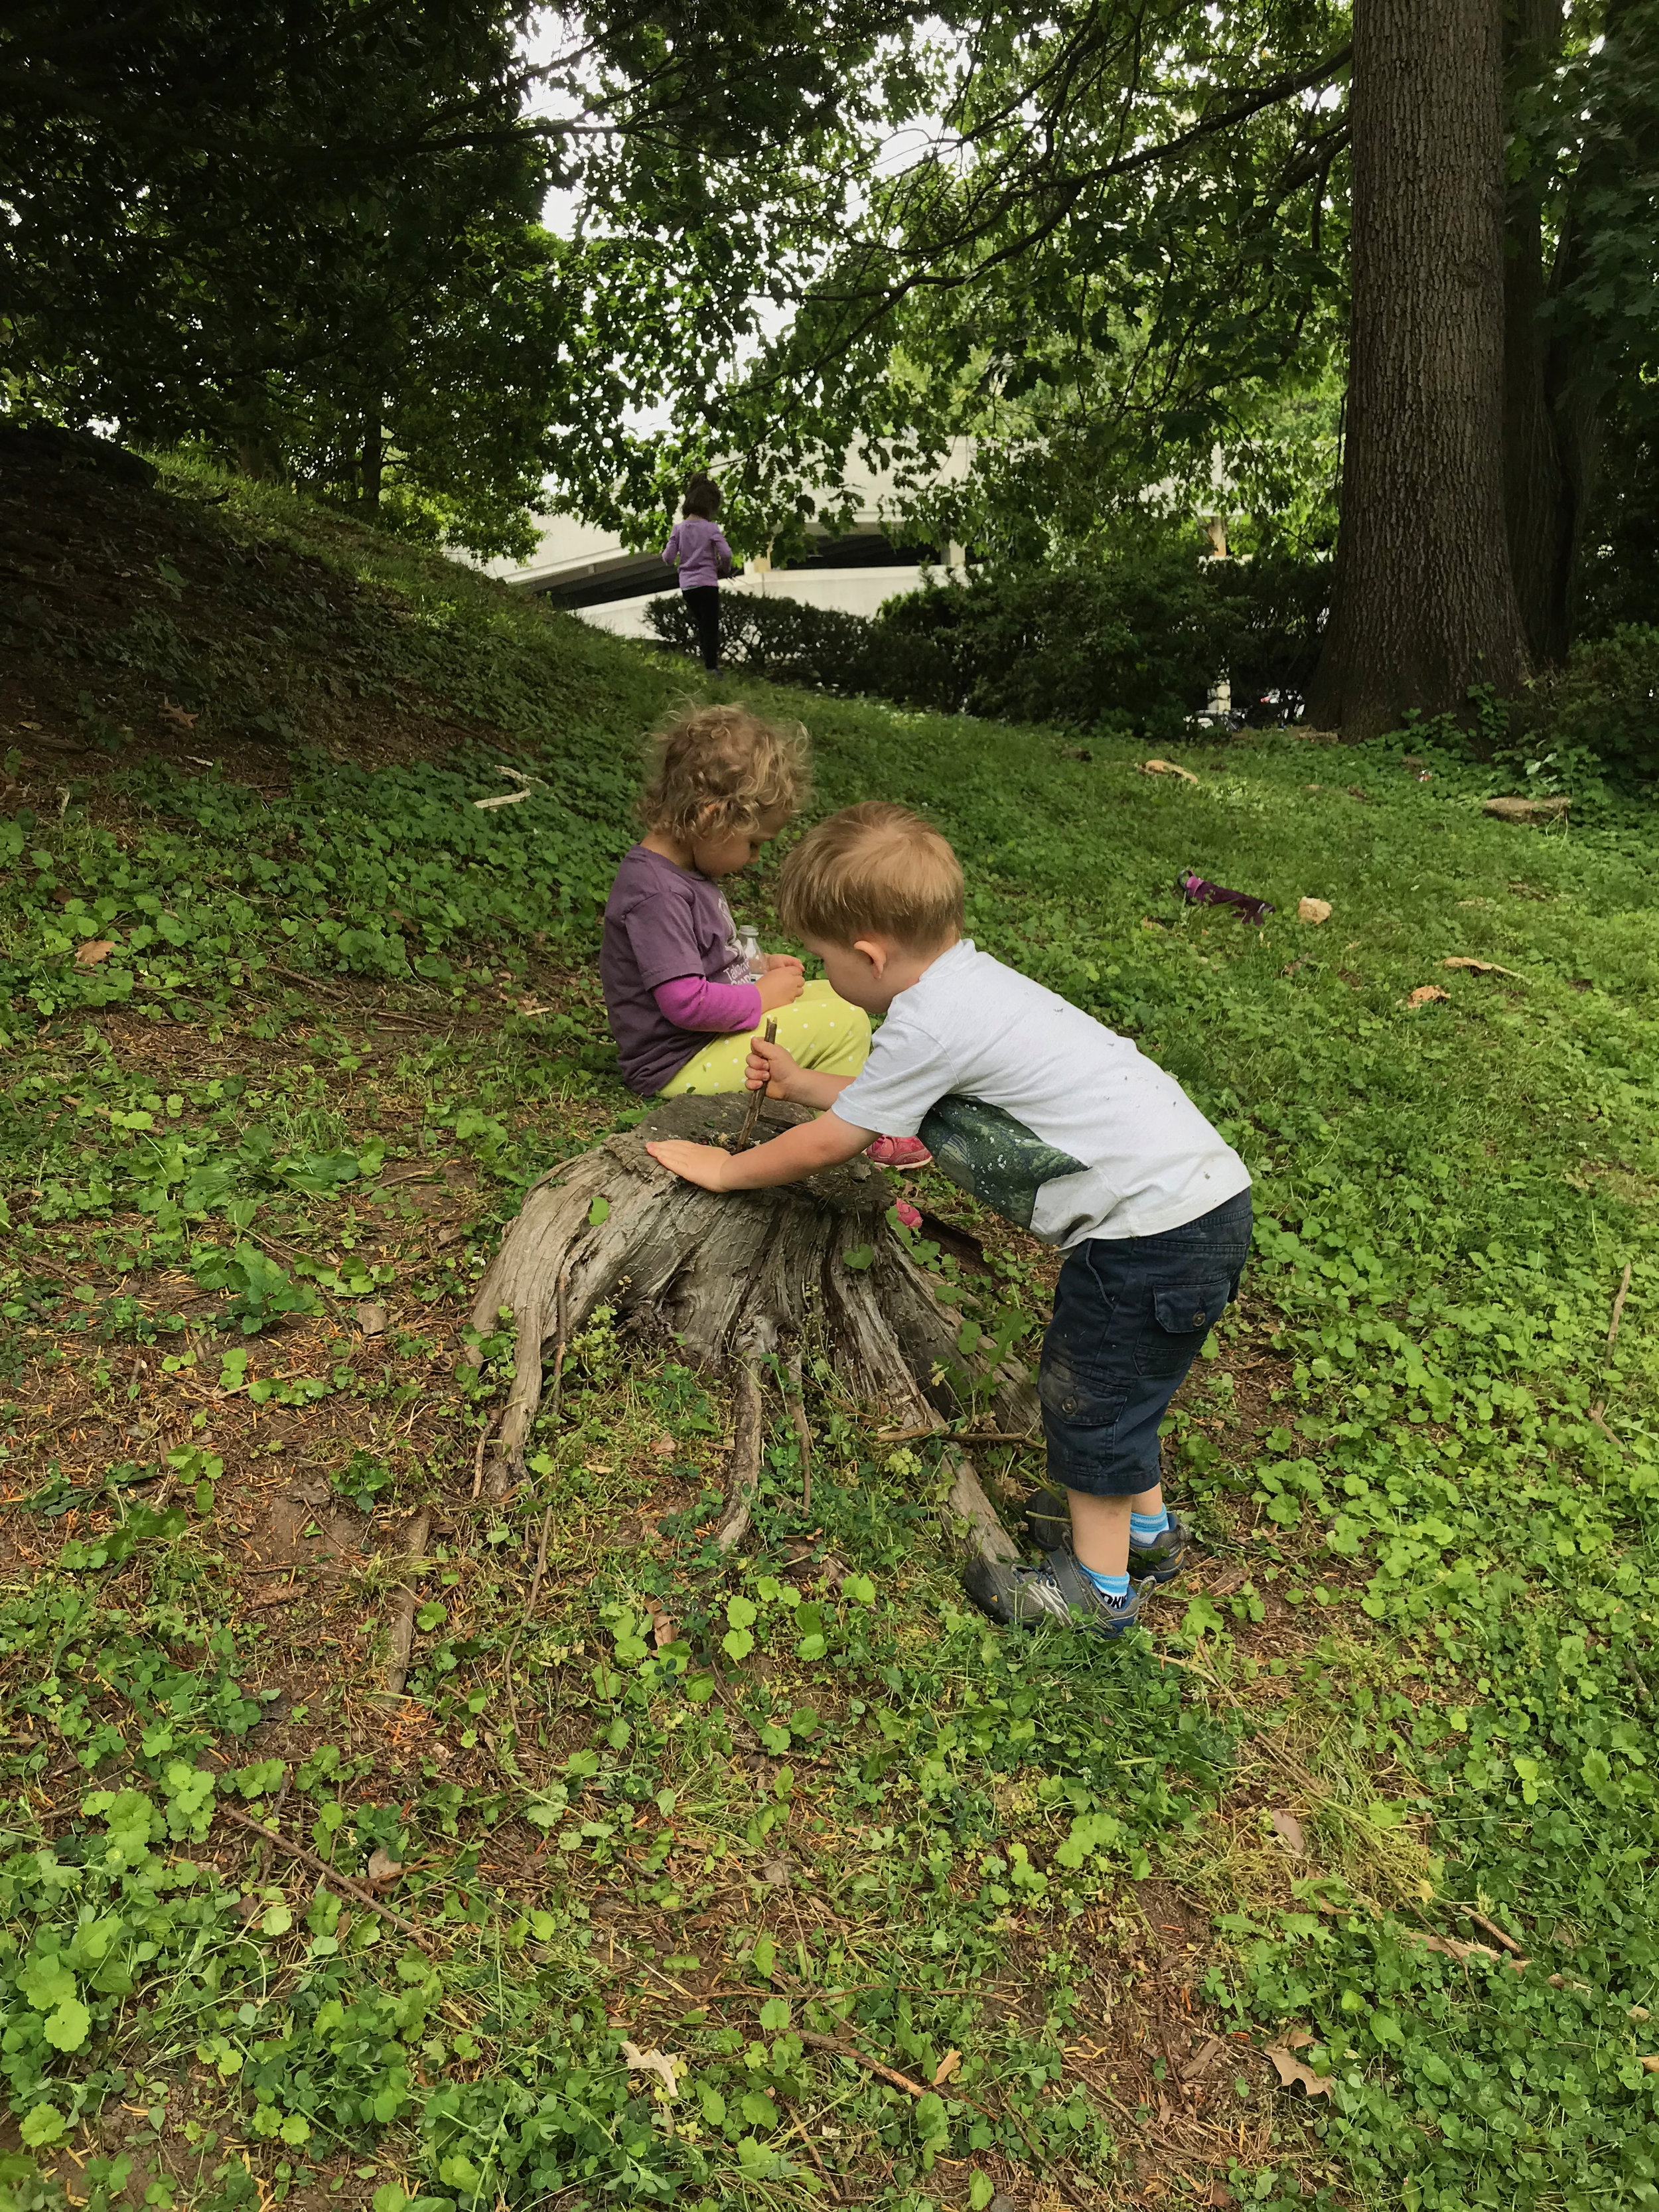 Just a stump? No. It is a cauldron with the addition of a stick and some ingredients. The lawn had just been mowed so it revealed so many great ingredients — clover and wild strawberries!